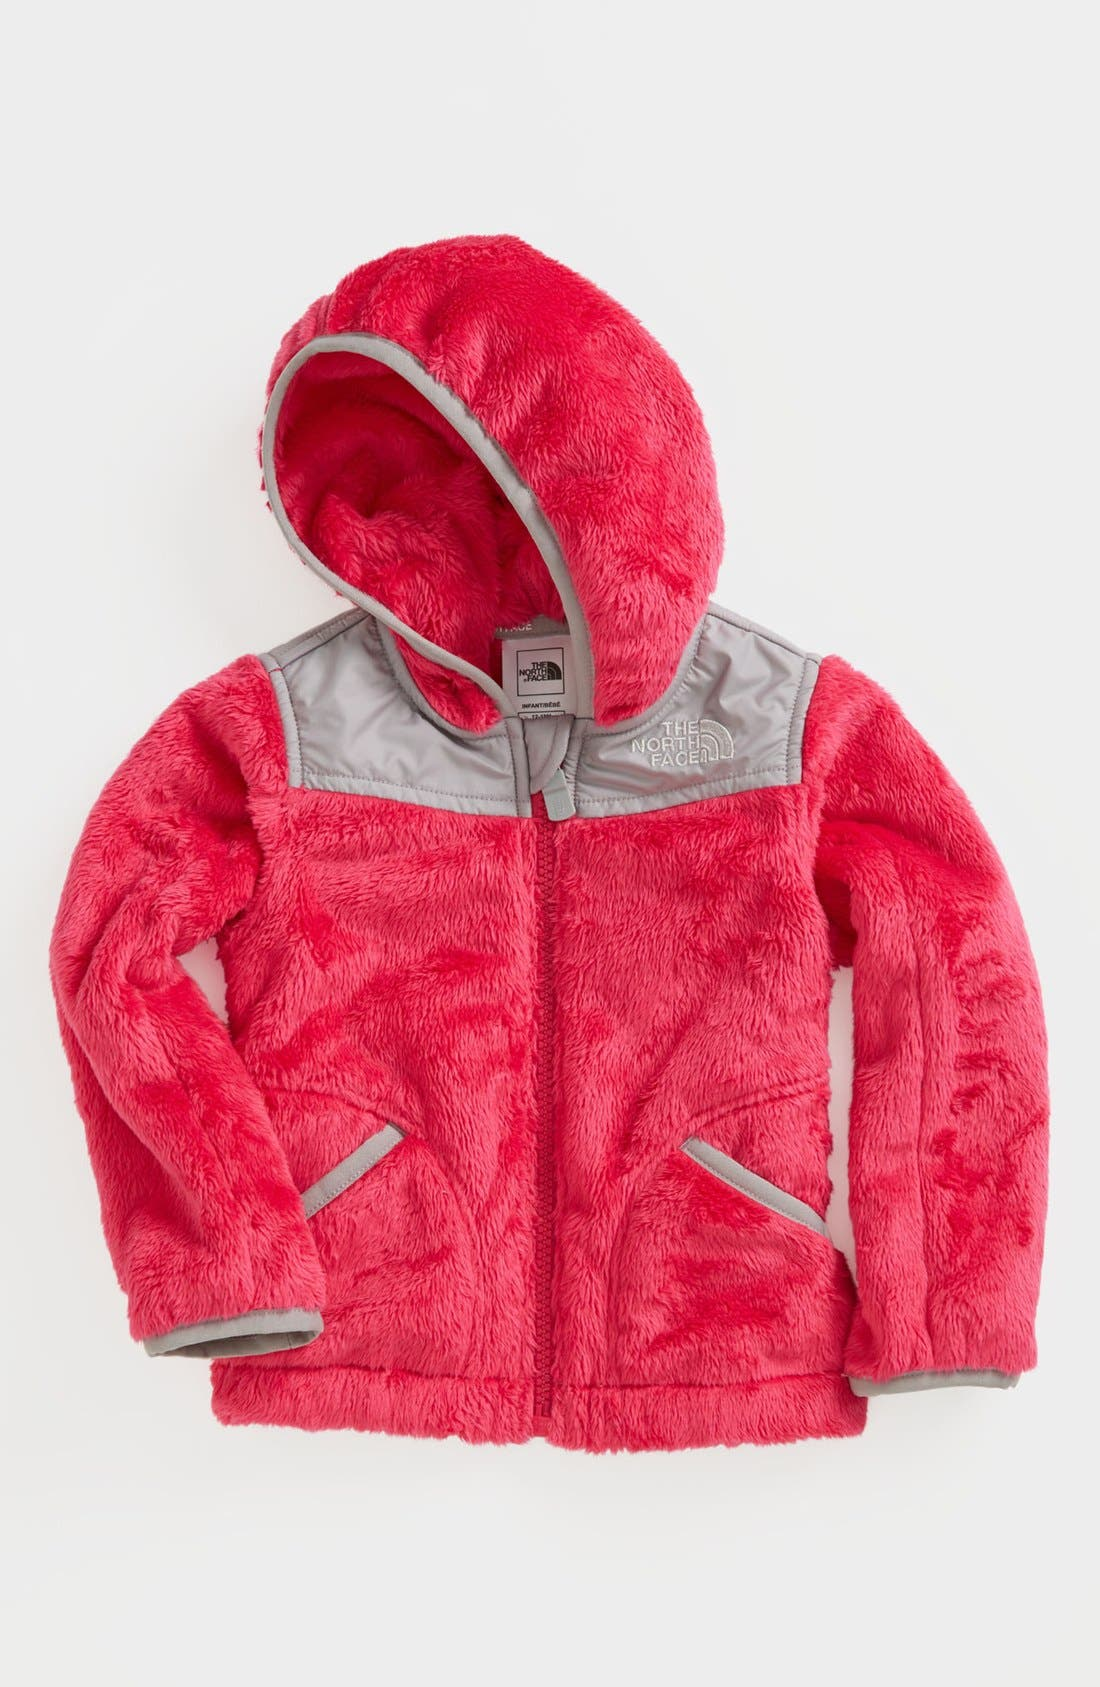 Alternate Image 1 Selected - The North Face 'Oso' Hooded Fleece Jacket (Toddler Girls)